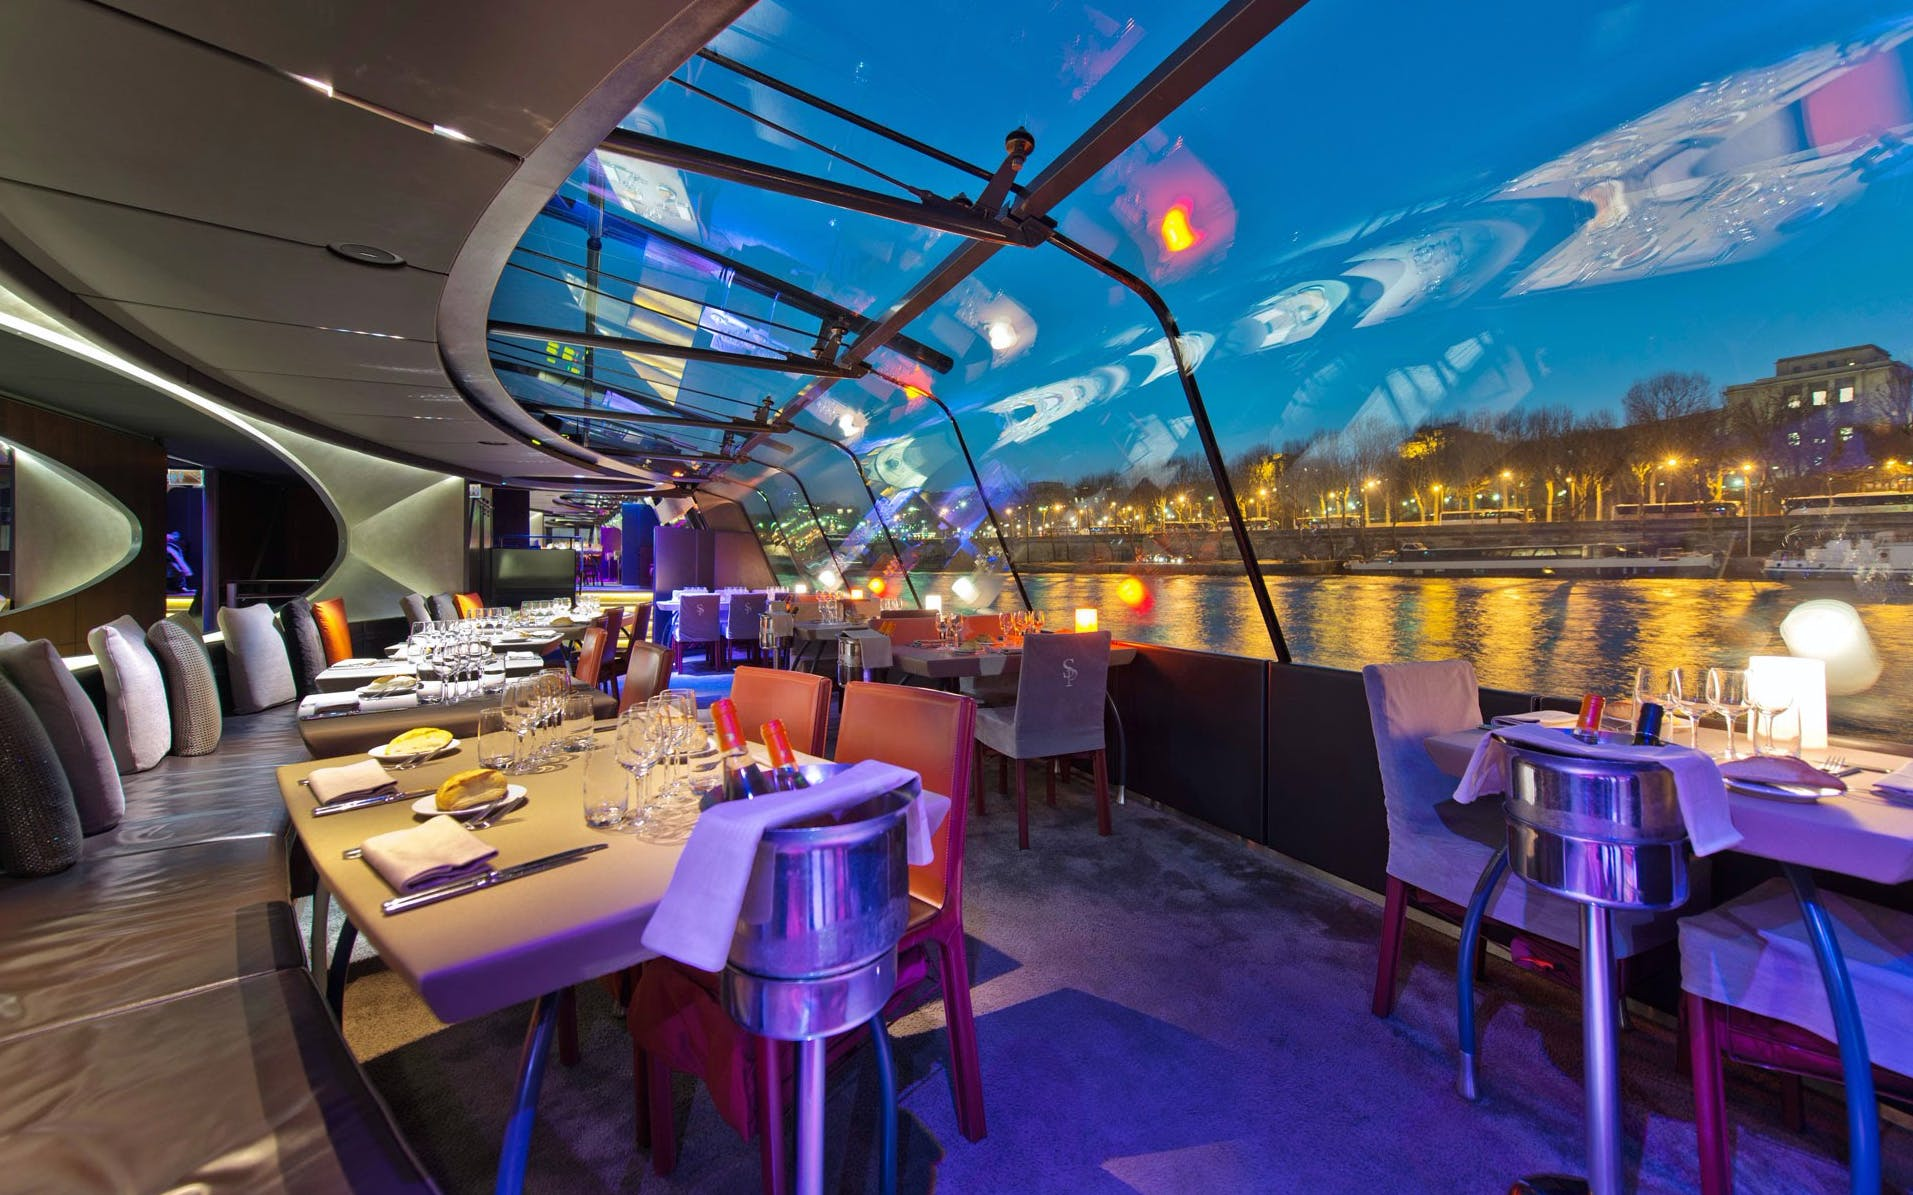 bateaux parisiens late evening seine river dinner cruise with wine-1